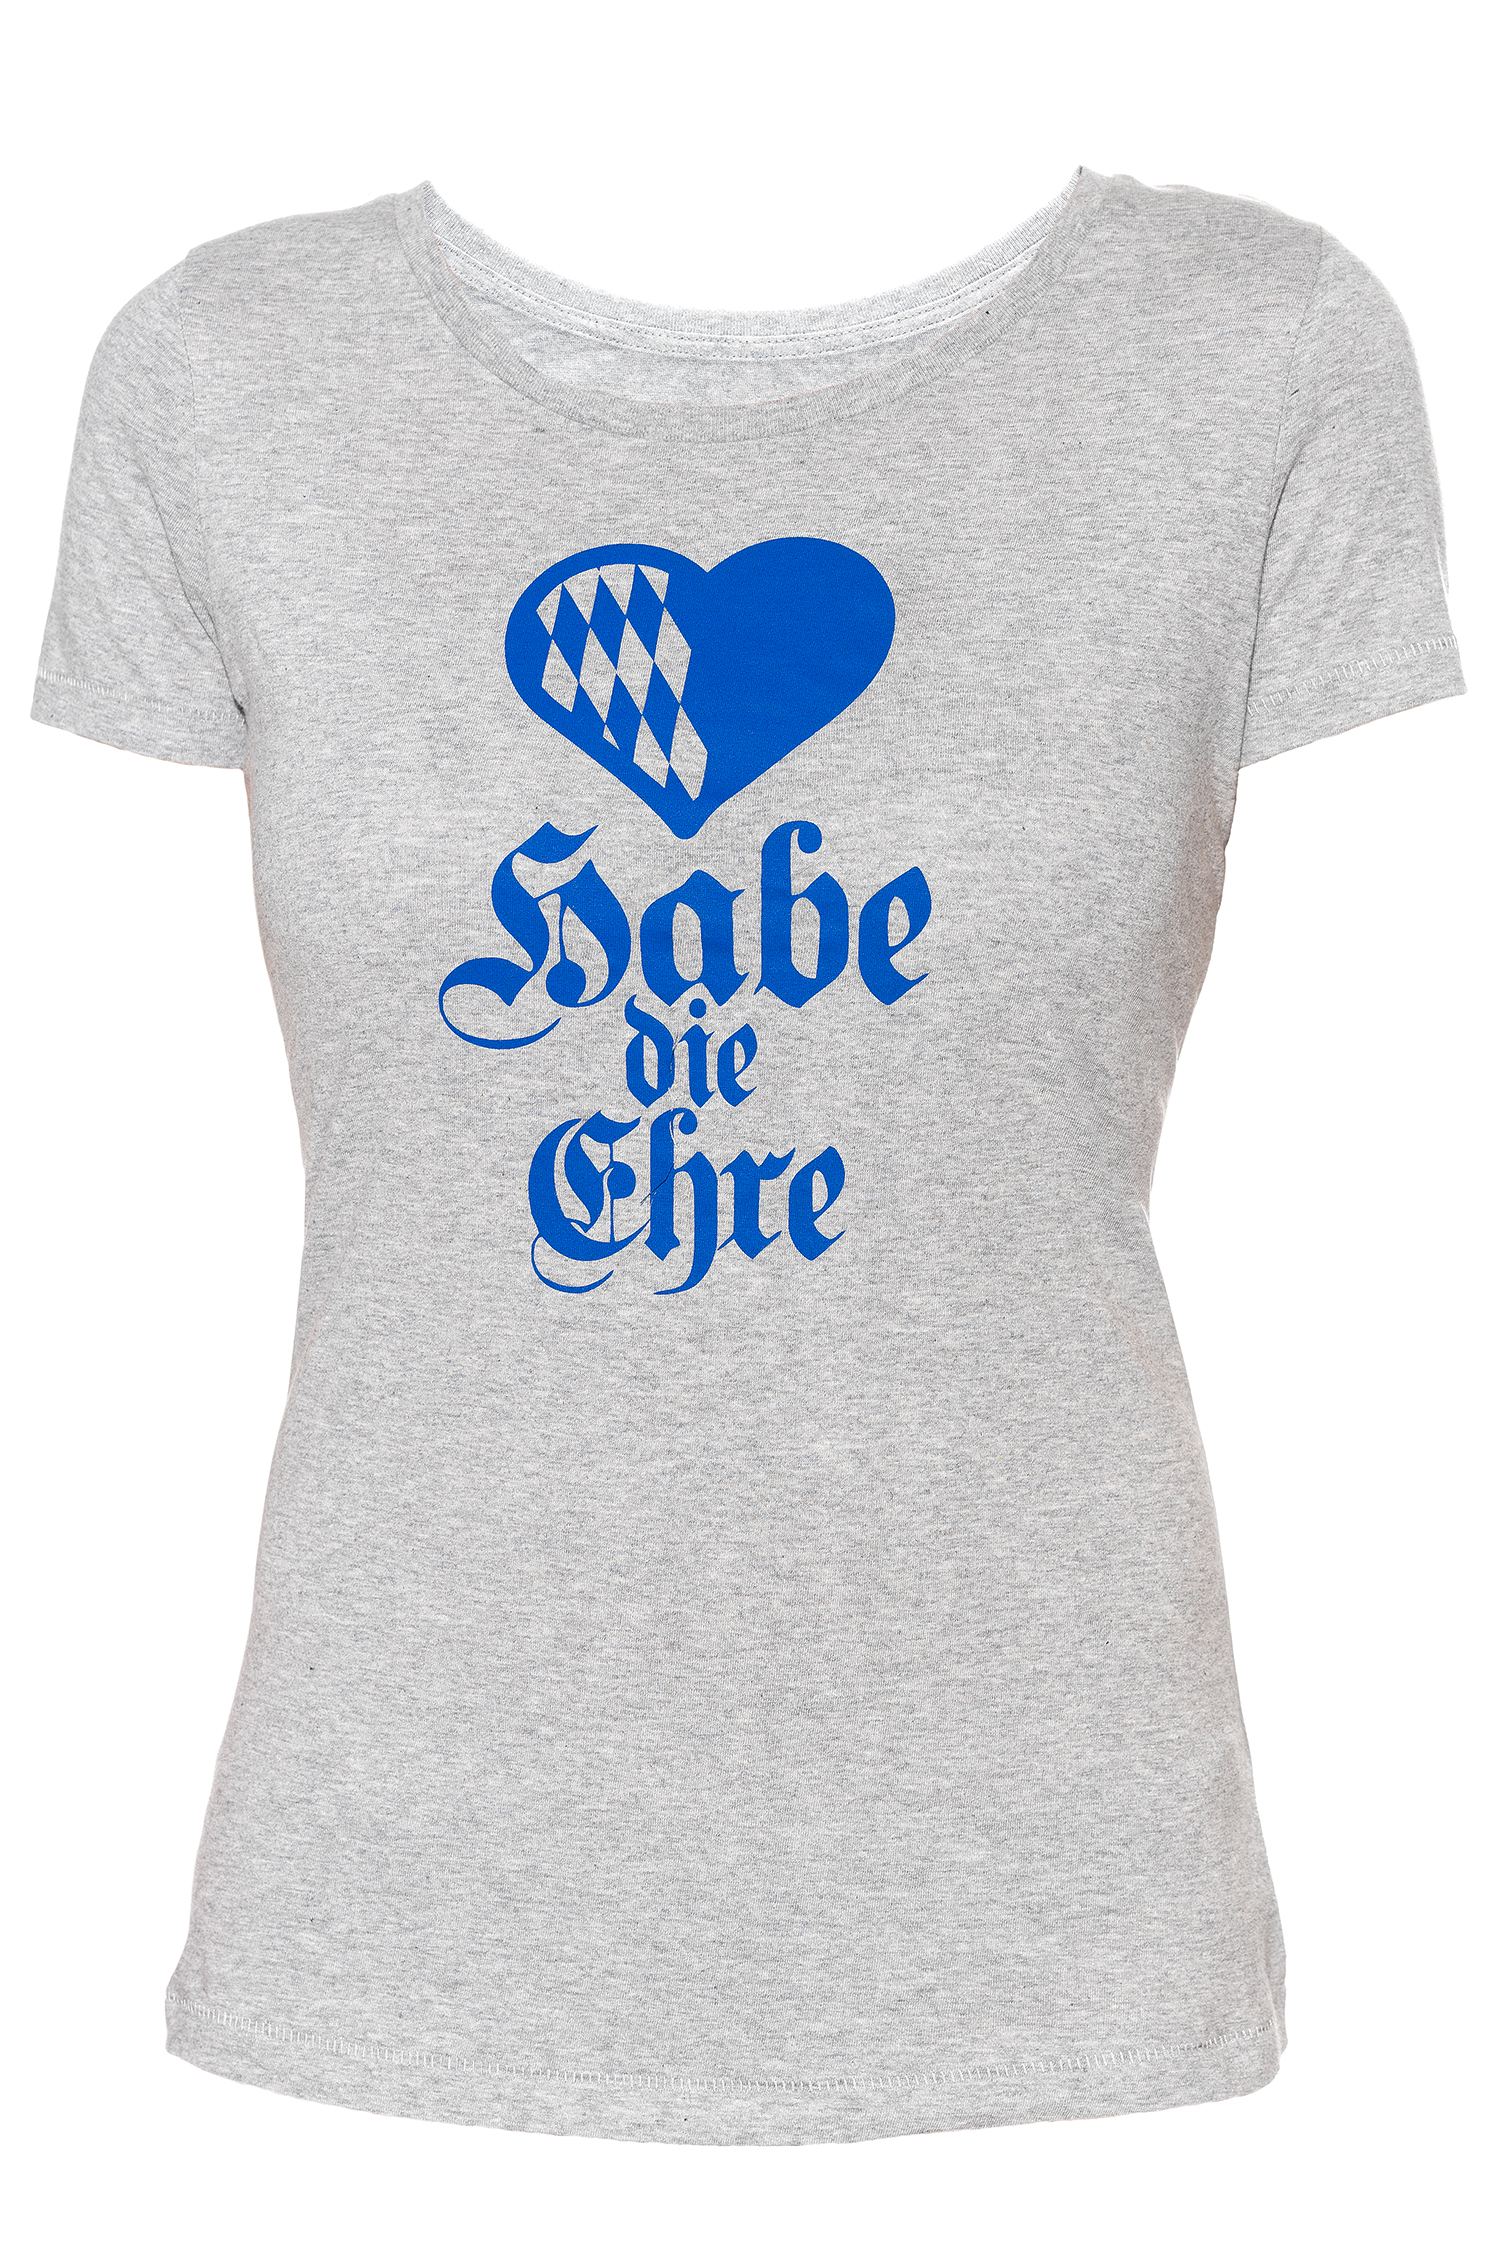 T-Shirt Habe die Ehre Damen M | heather grey